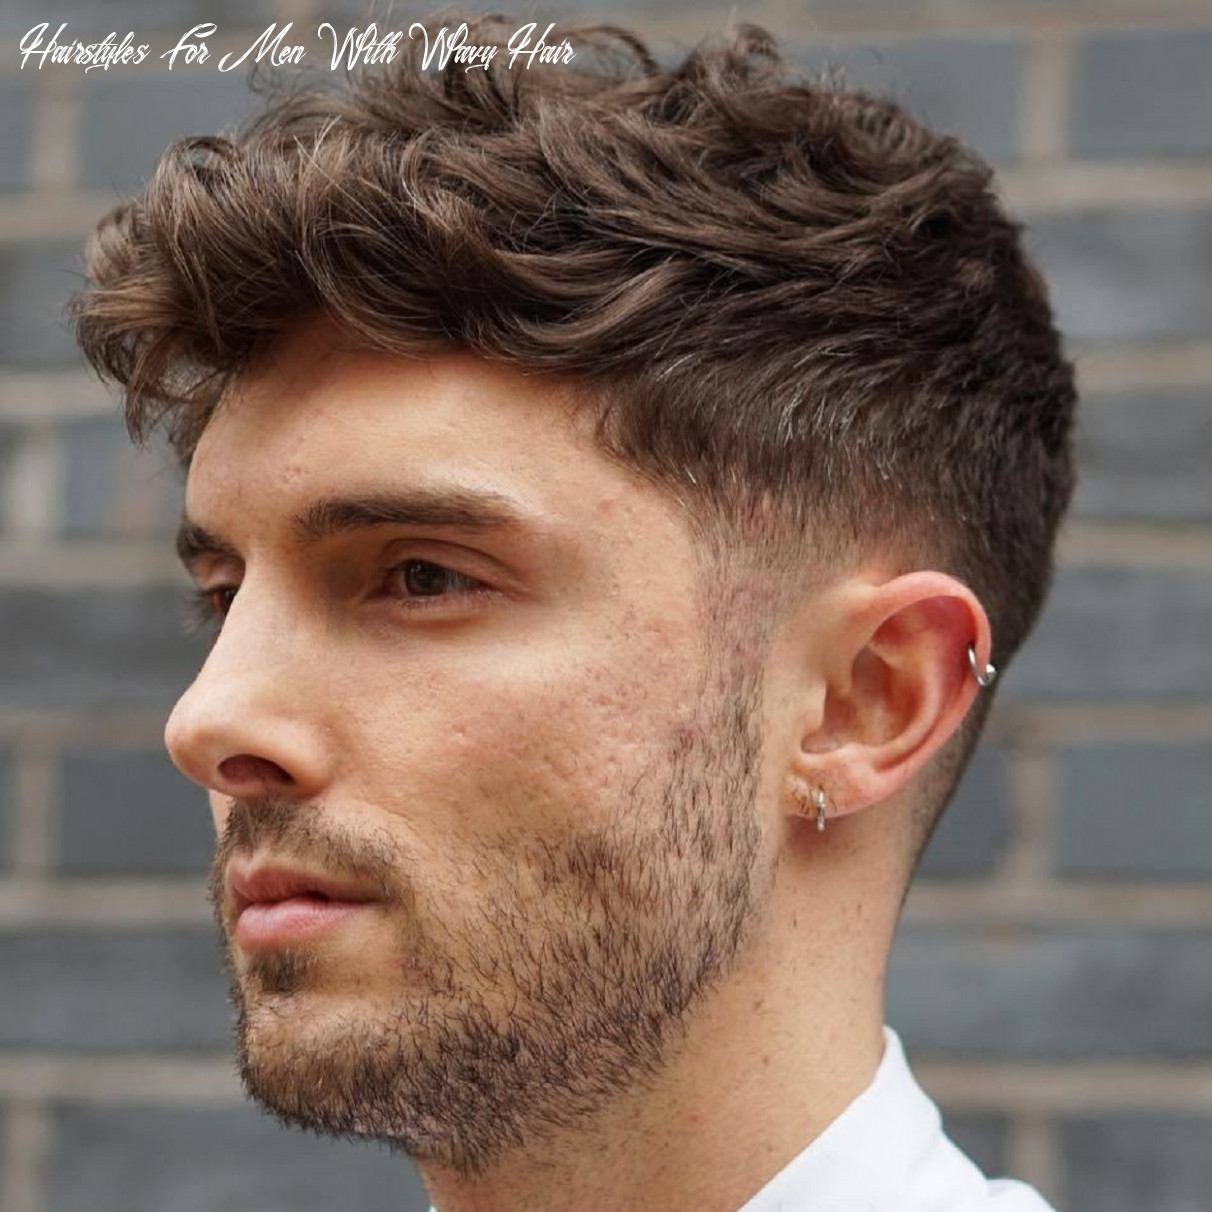 11 statement hairstyles for men with thick hair hairstyles for men with wavy hair